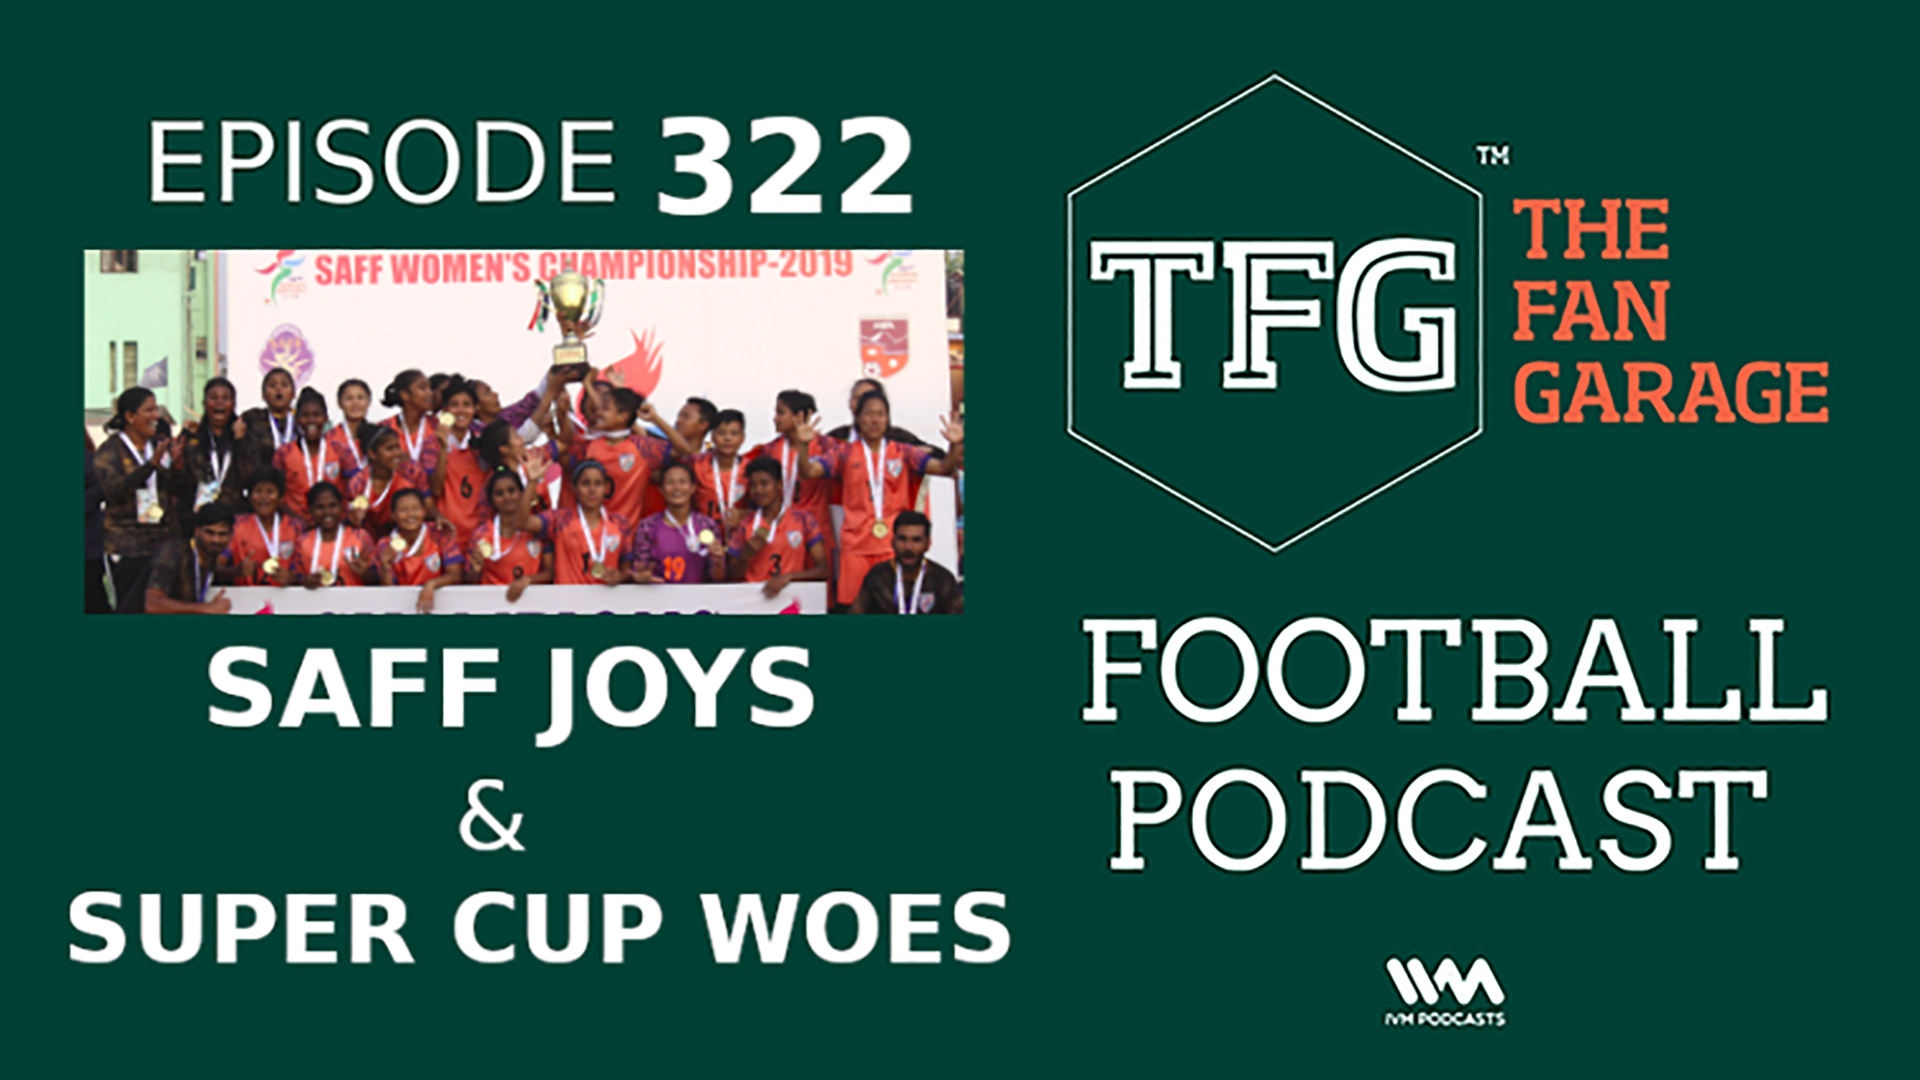 TFGFootballEpisode322.png